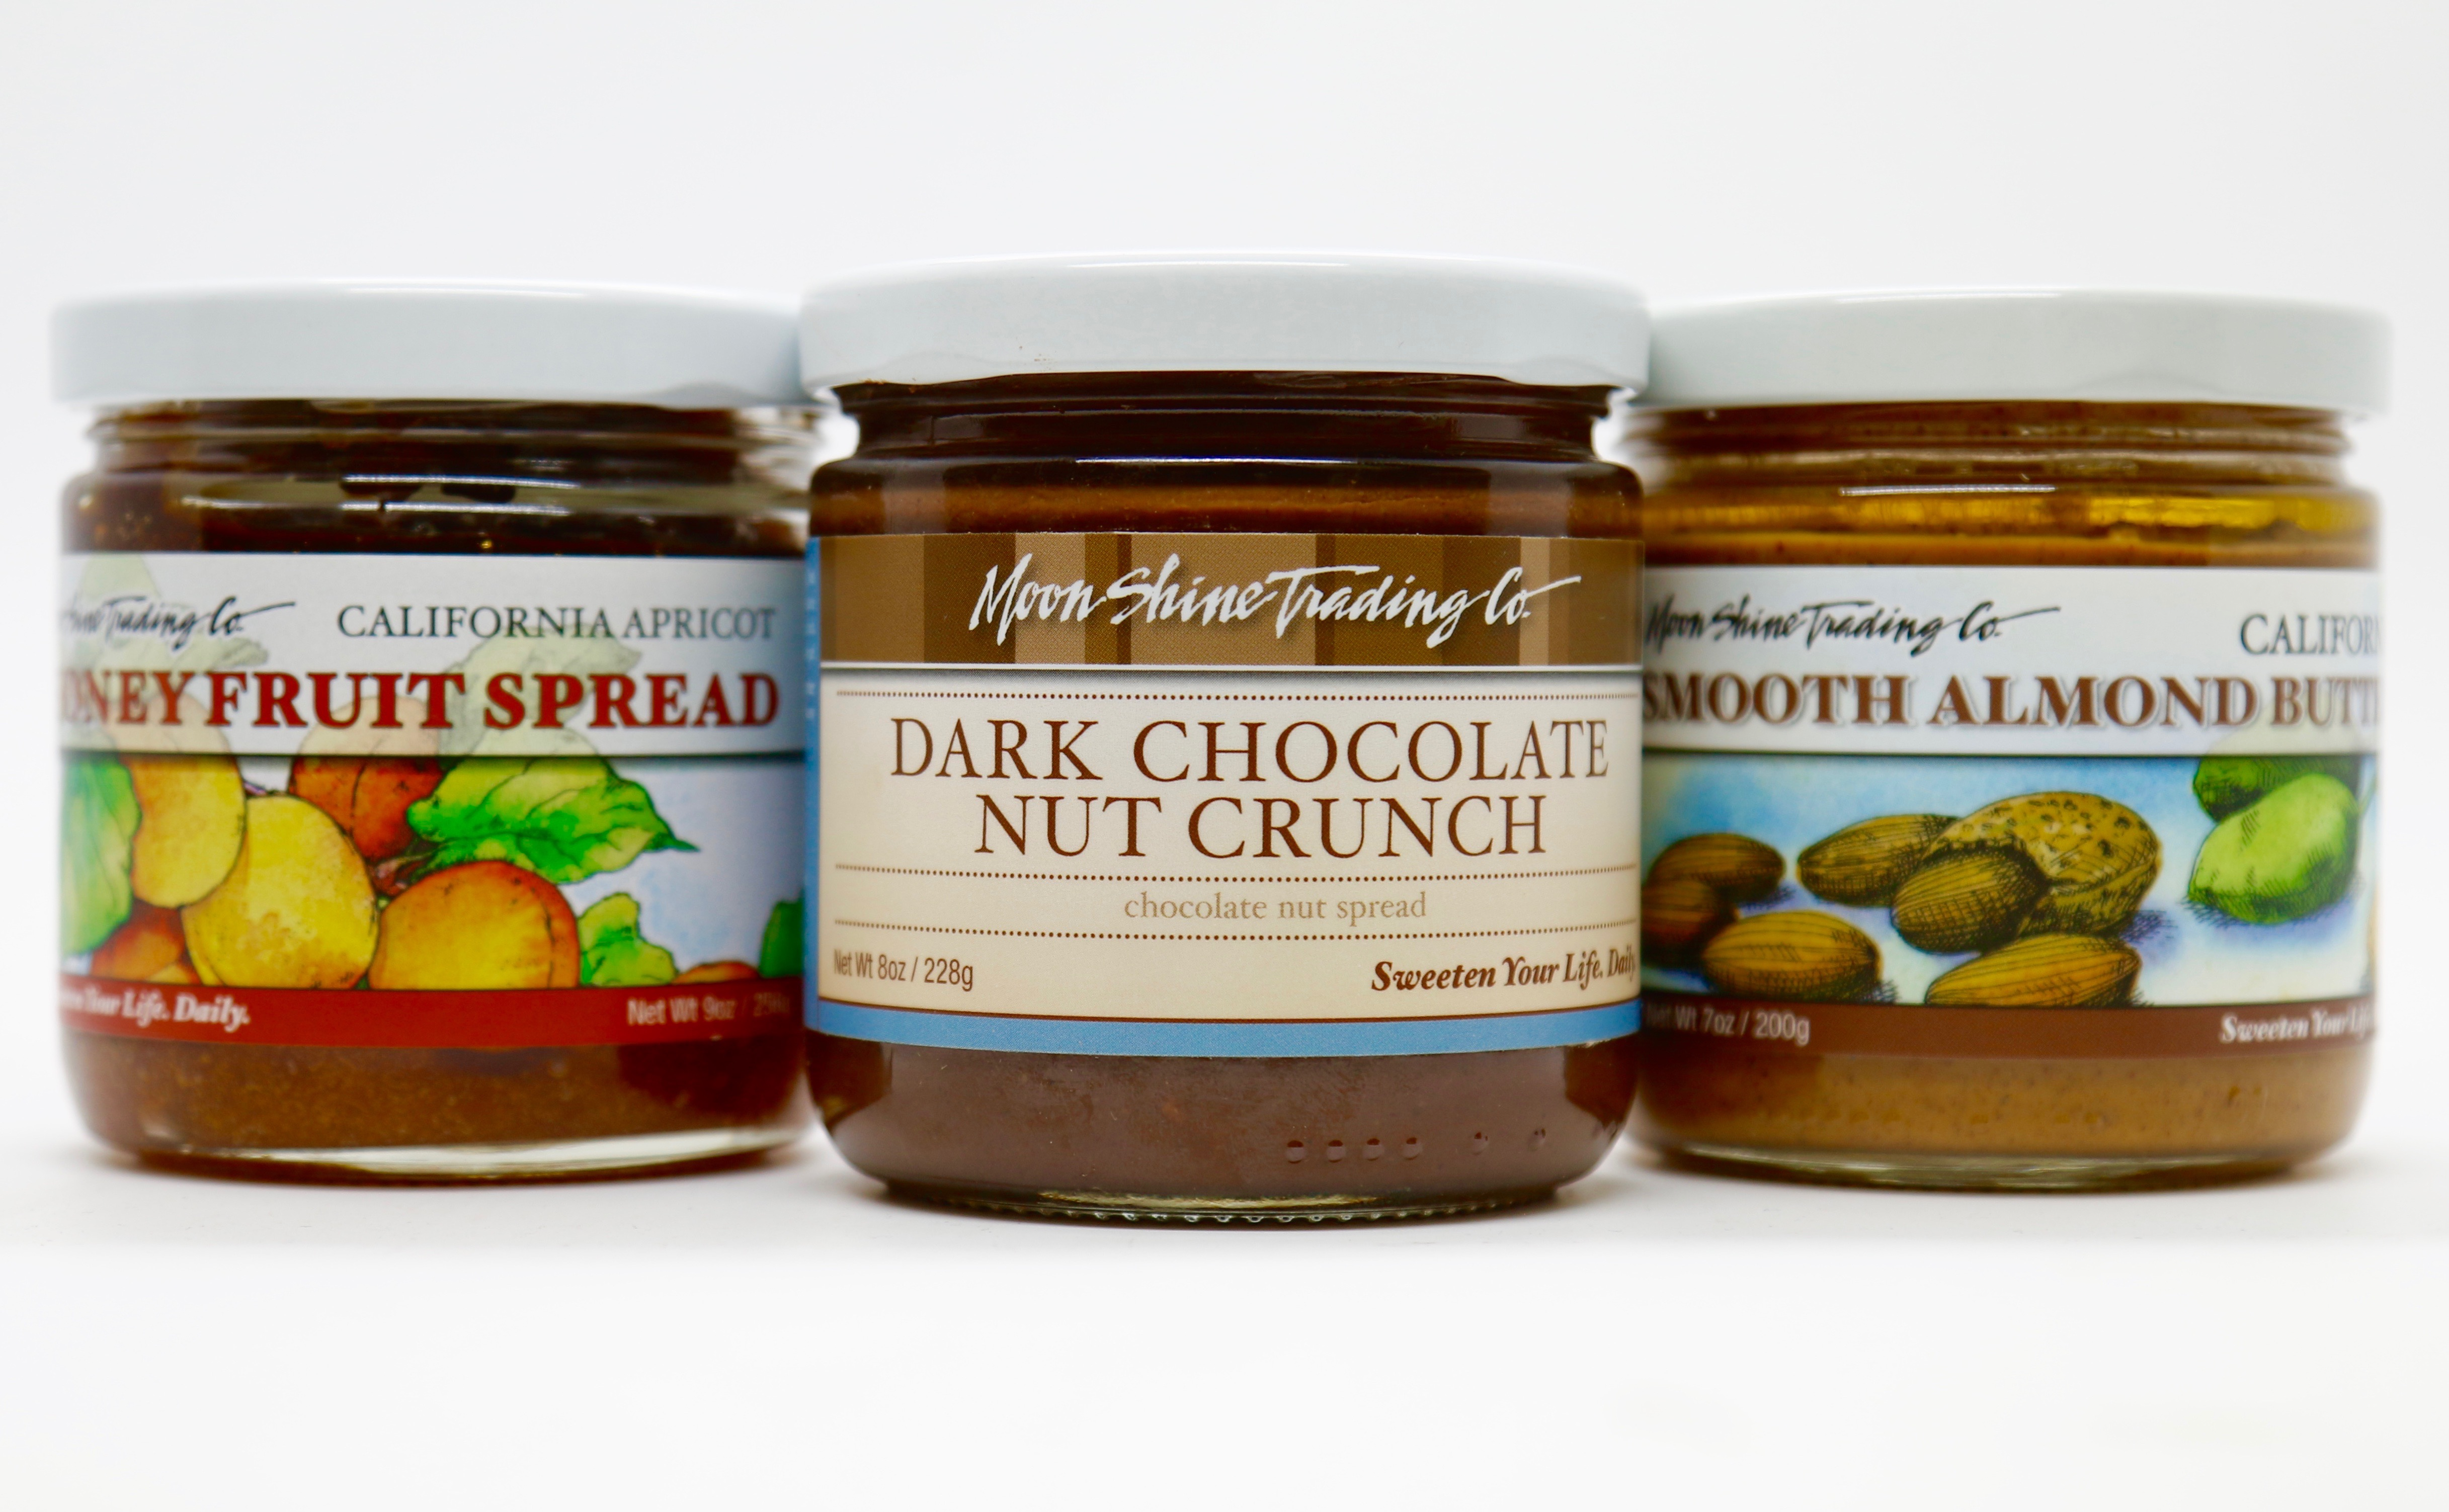 Moon Shine Trading Company Chocolate Nut Spreads, Honey Fruit Spreads and Nut Butters